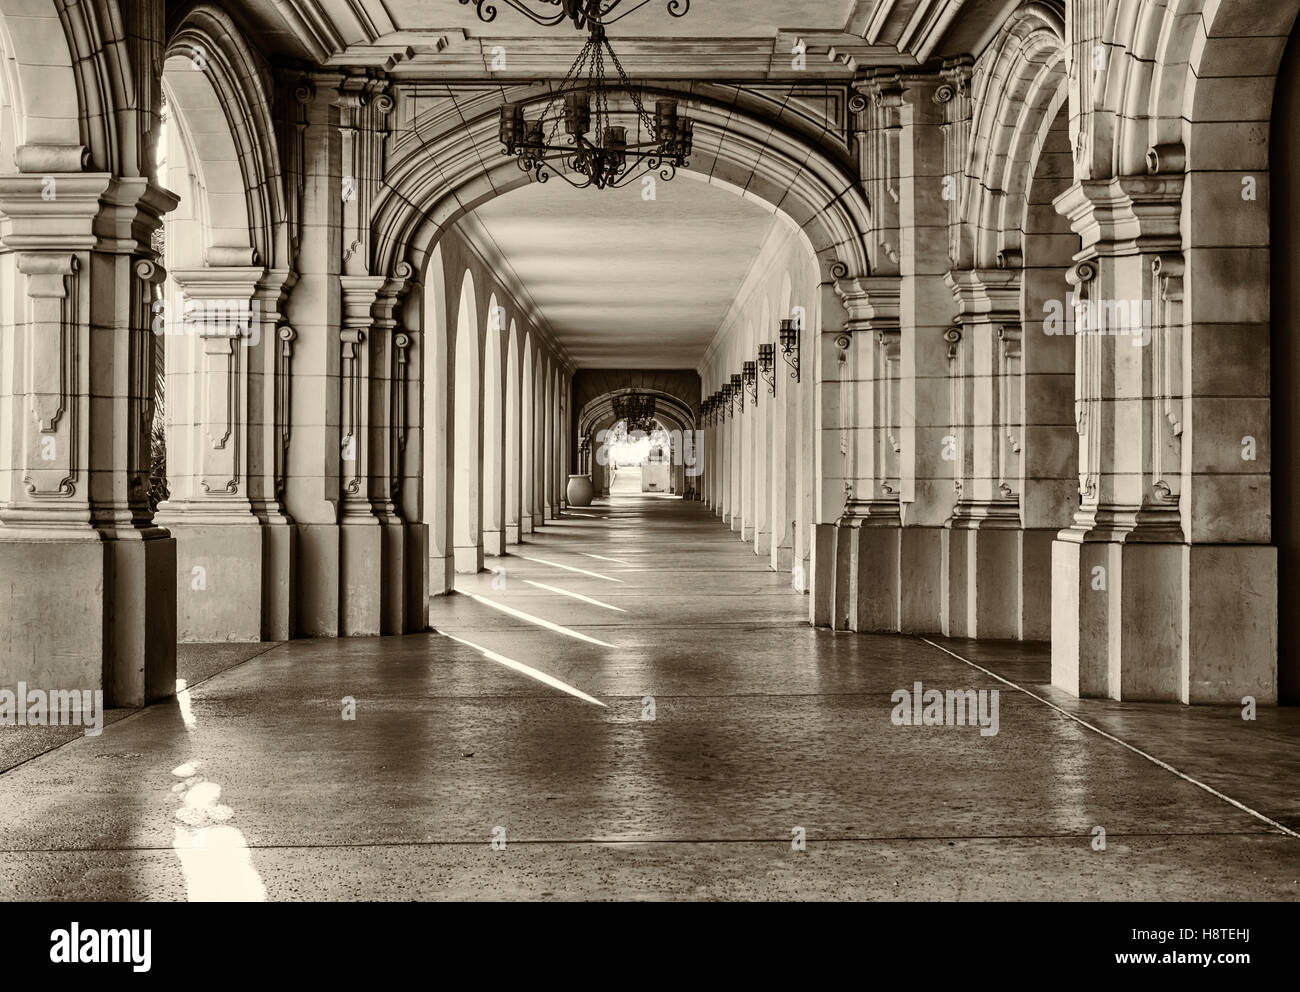 Historic architecture and walkway at Balboa Park. San Diego, California, United States. Stock Photo